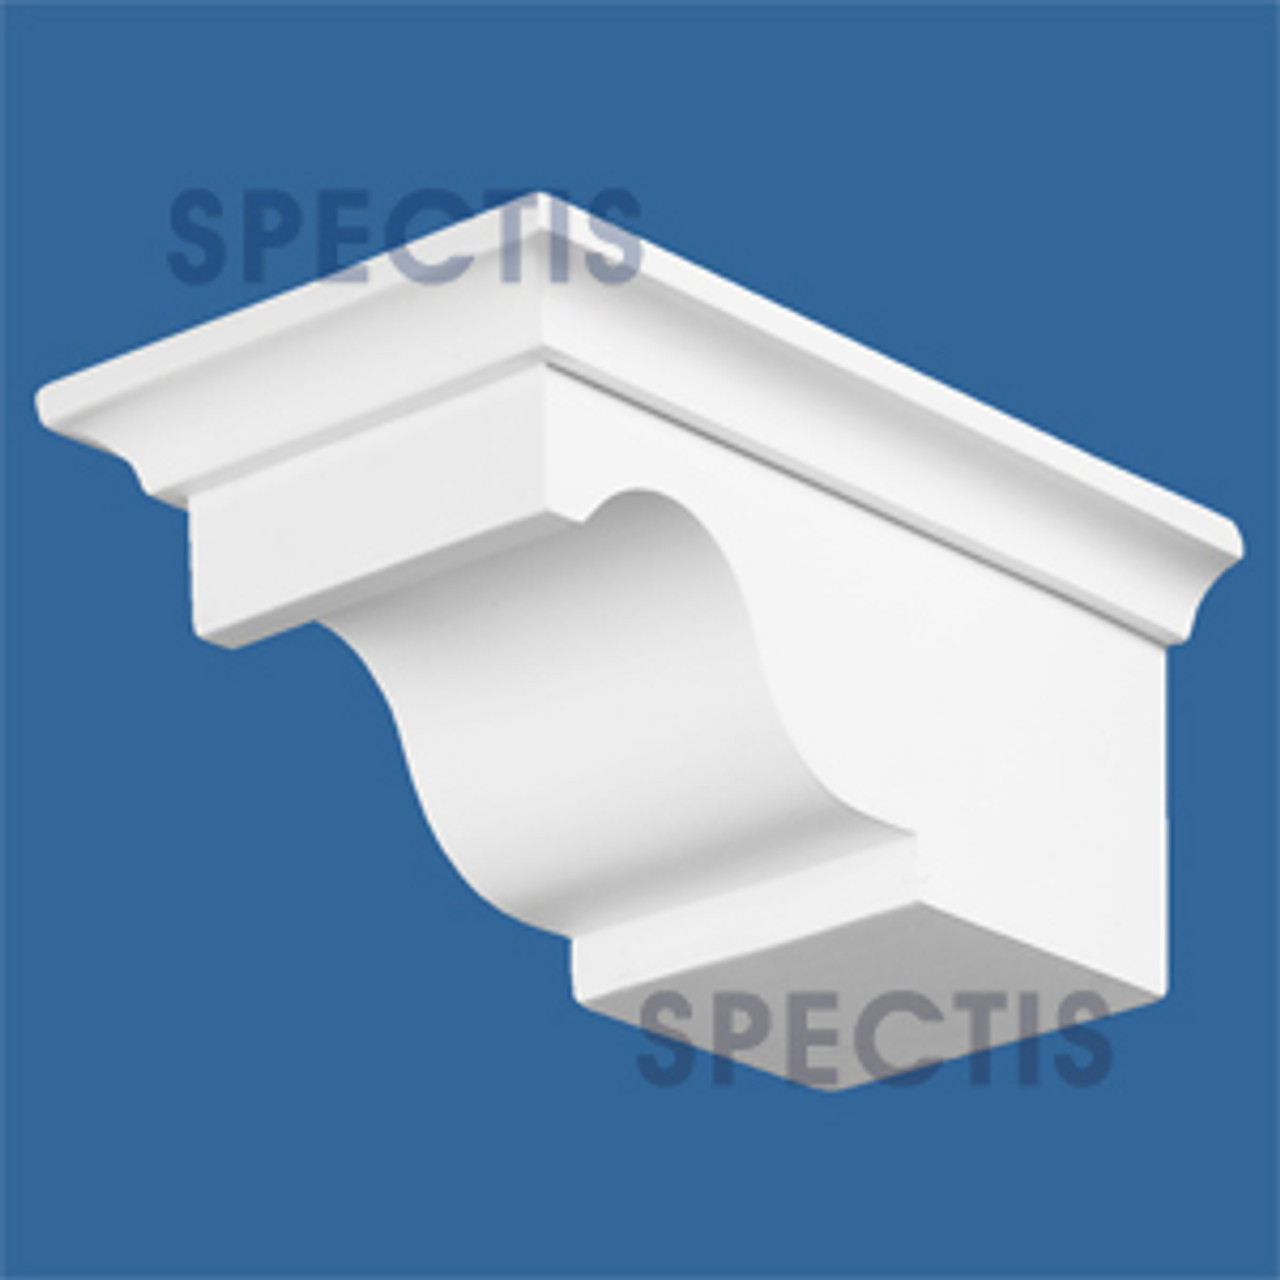 """BL2404L-10/12 Spectis Eave Block or Bracket 5""""W x 3.5""""H x 7.75"""" Projection"""